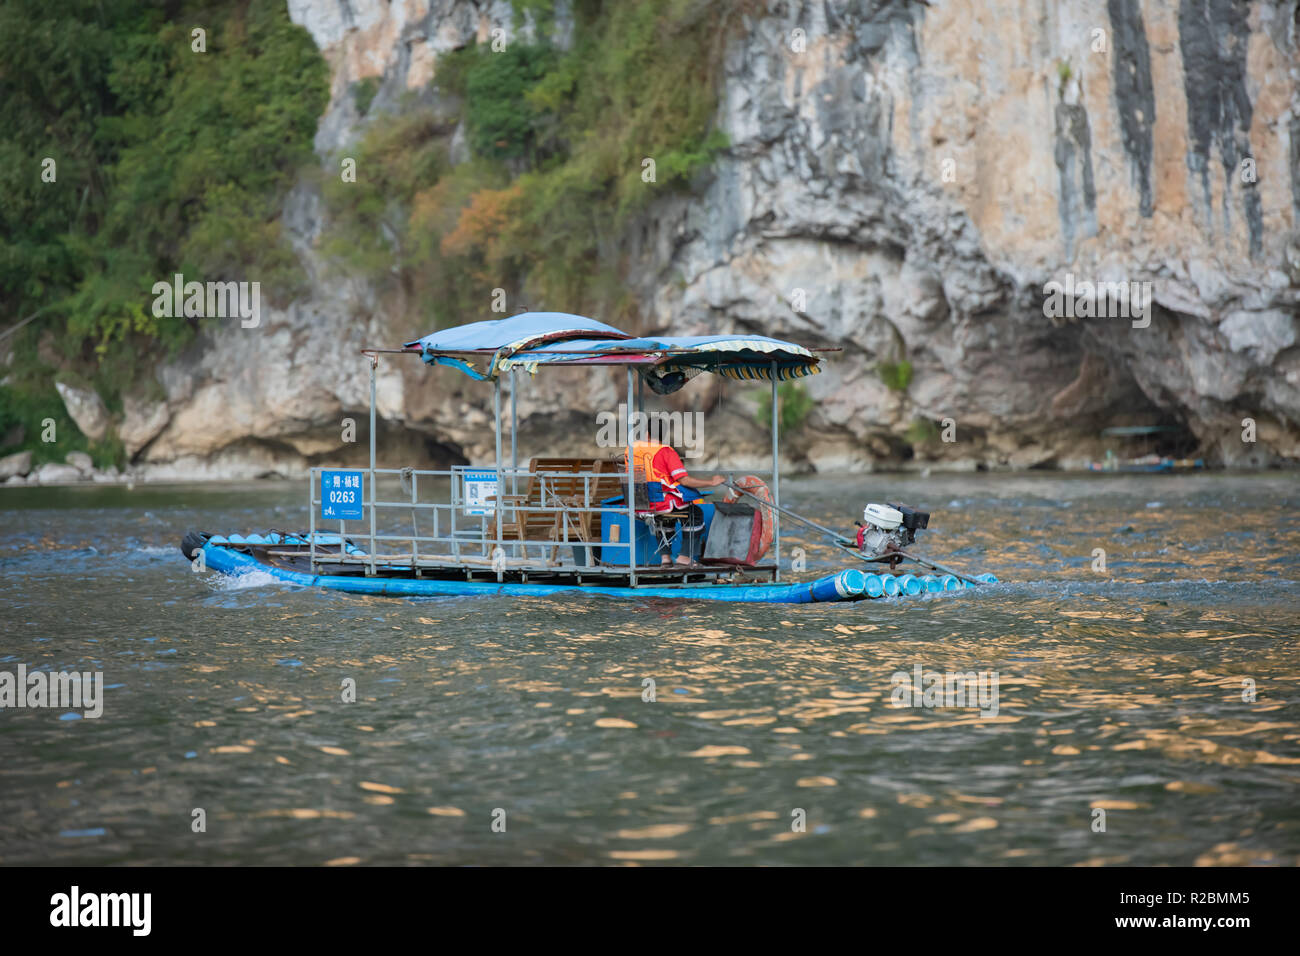 Water taxi on Lijiang River - Stock Image